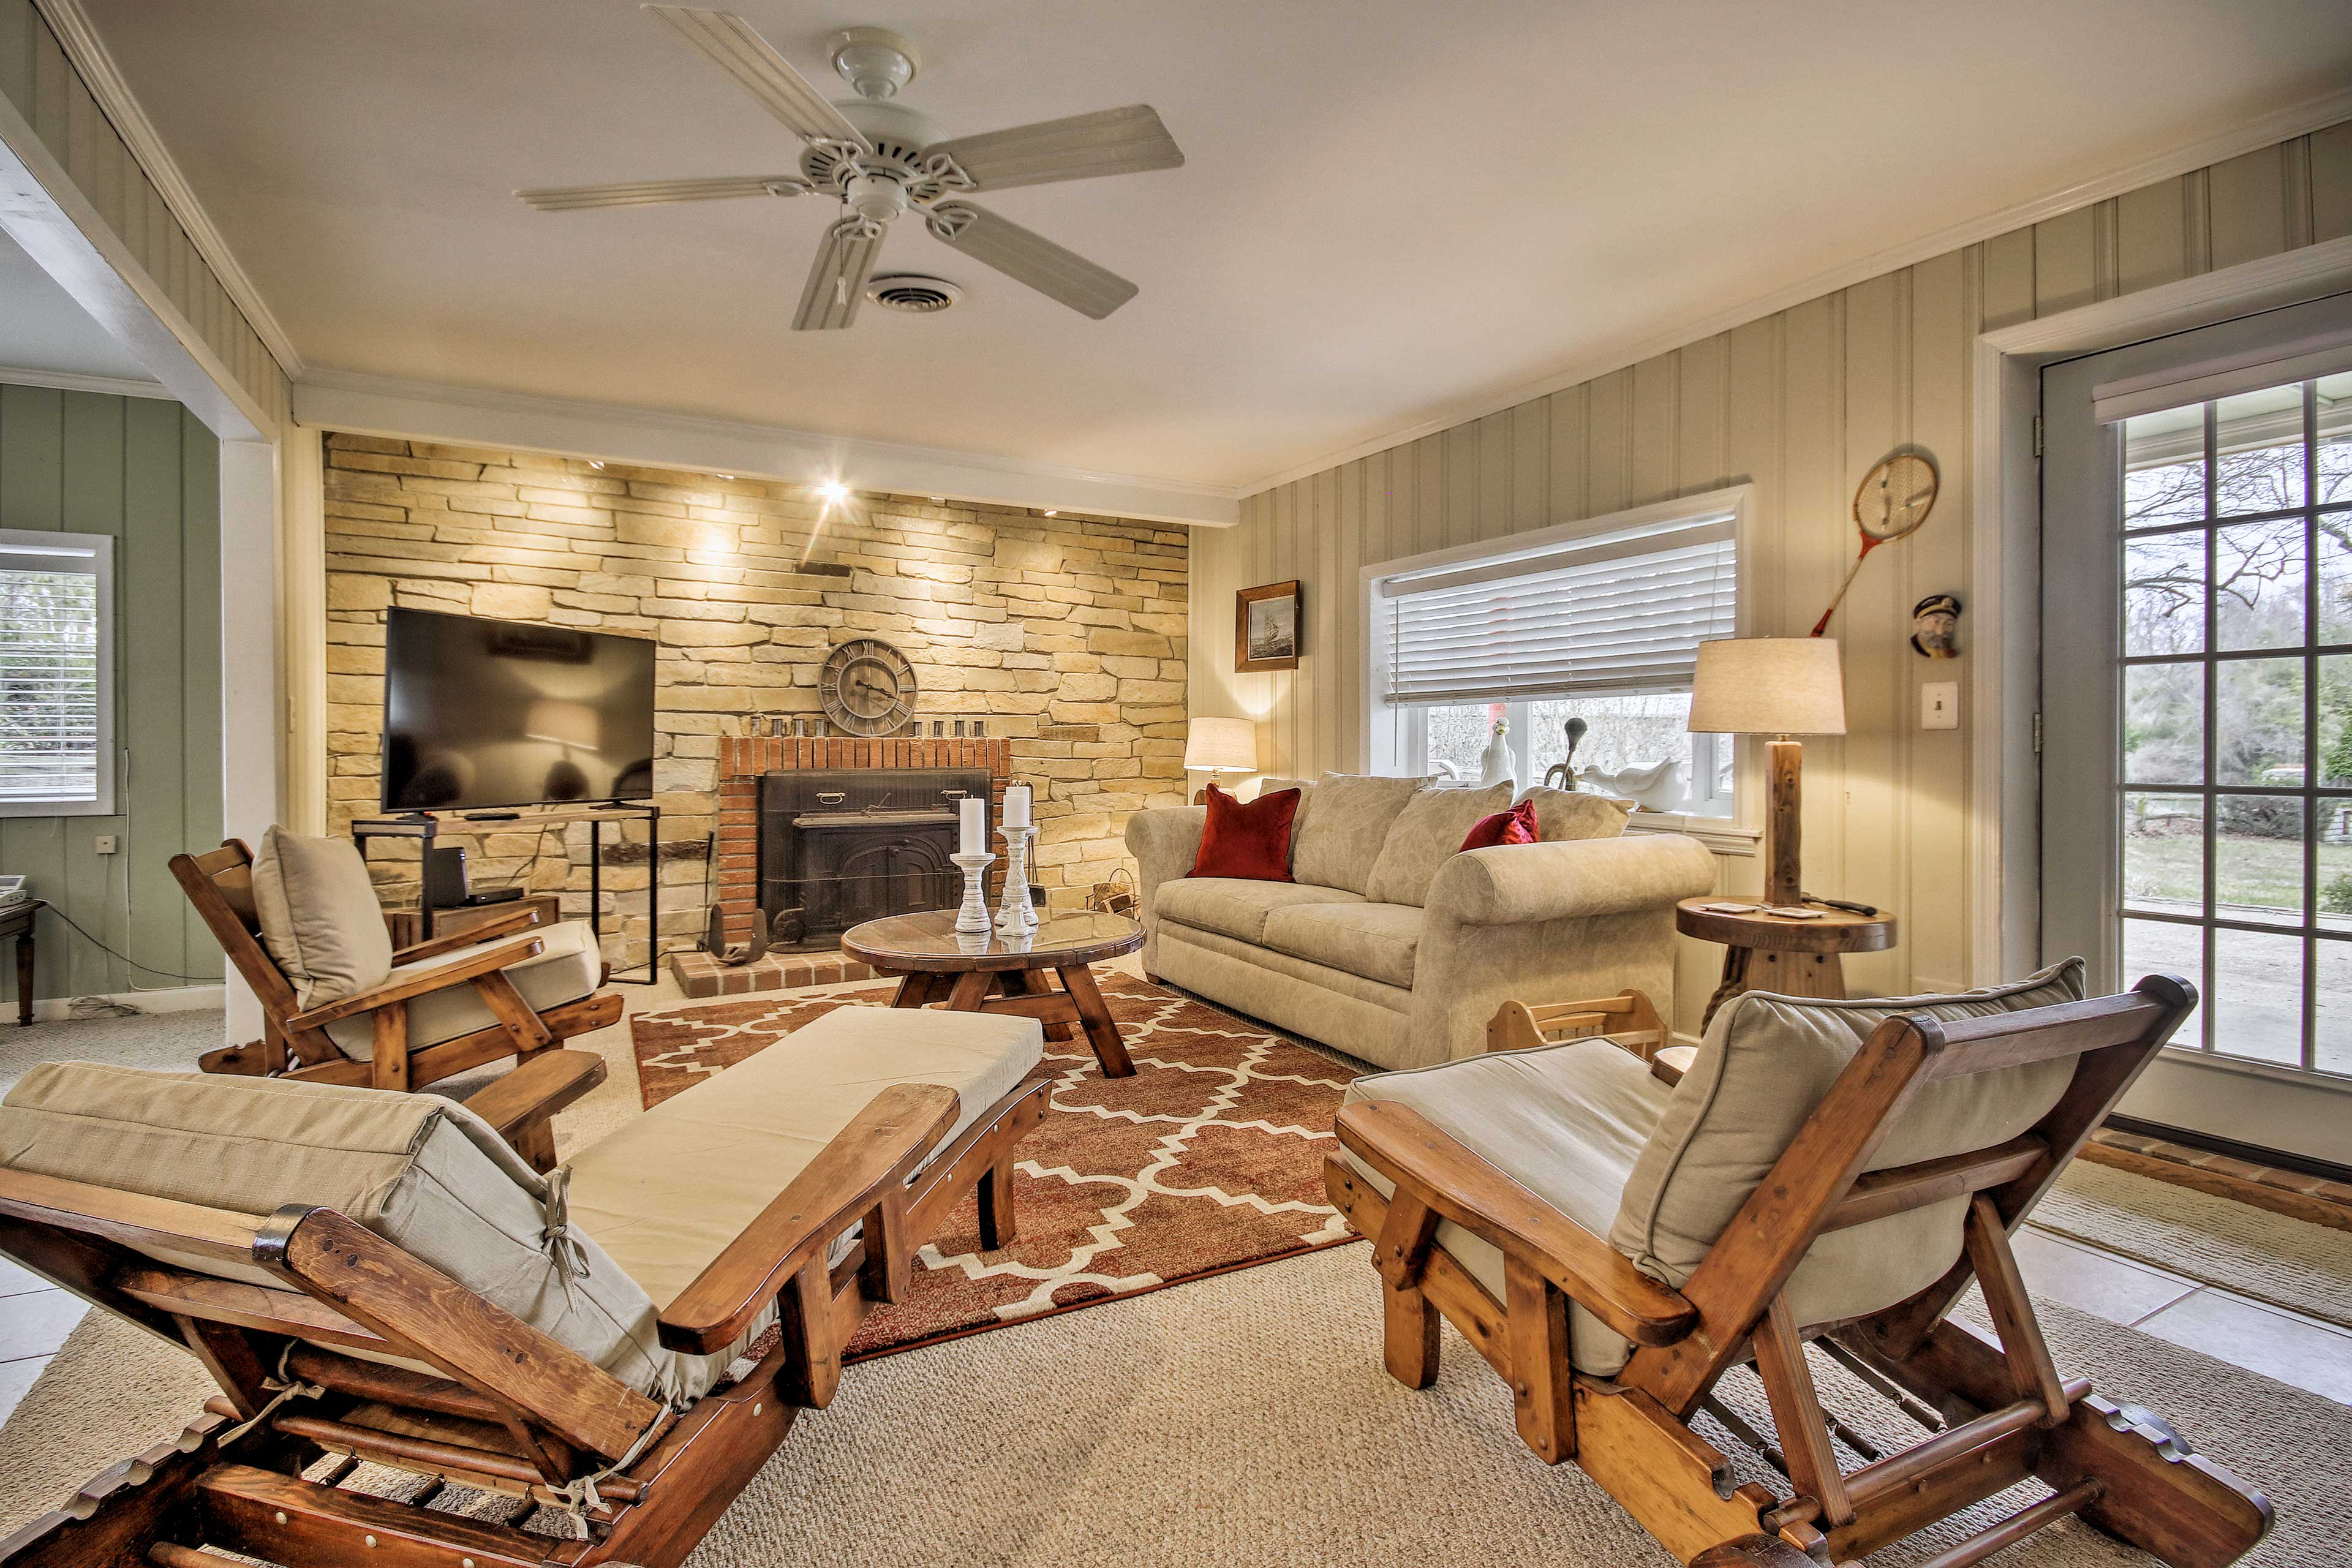 Make yourself at home in this 3-bedroom, 1-bathroom Annapolis home.